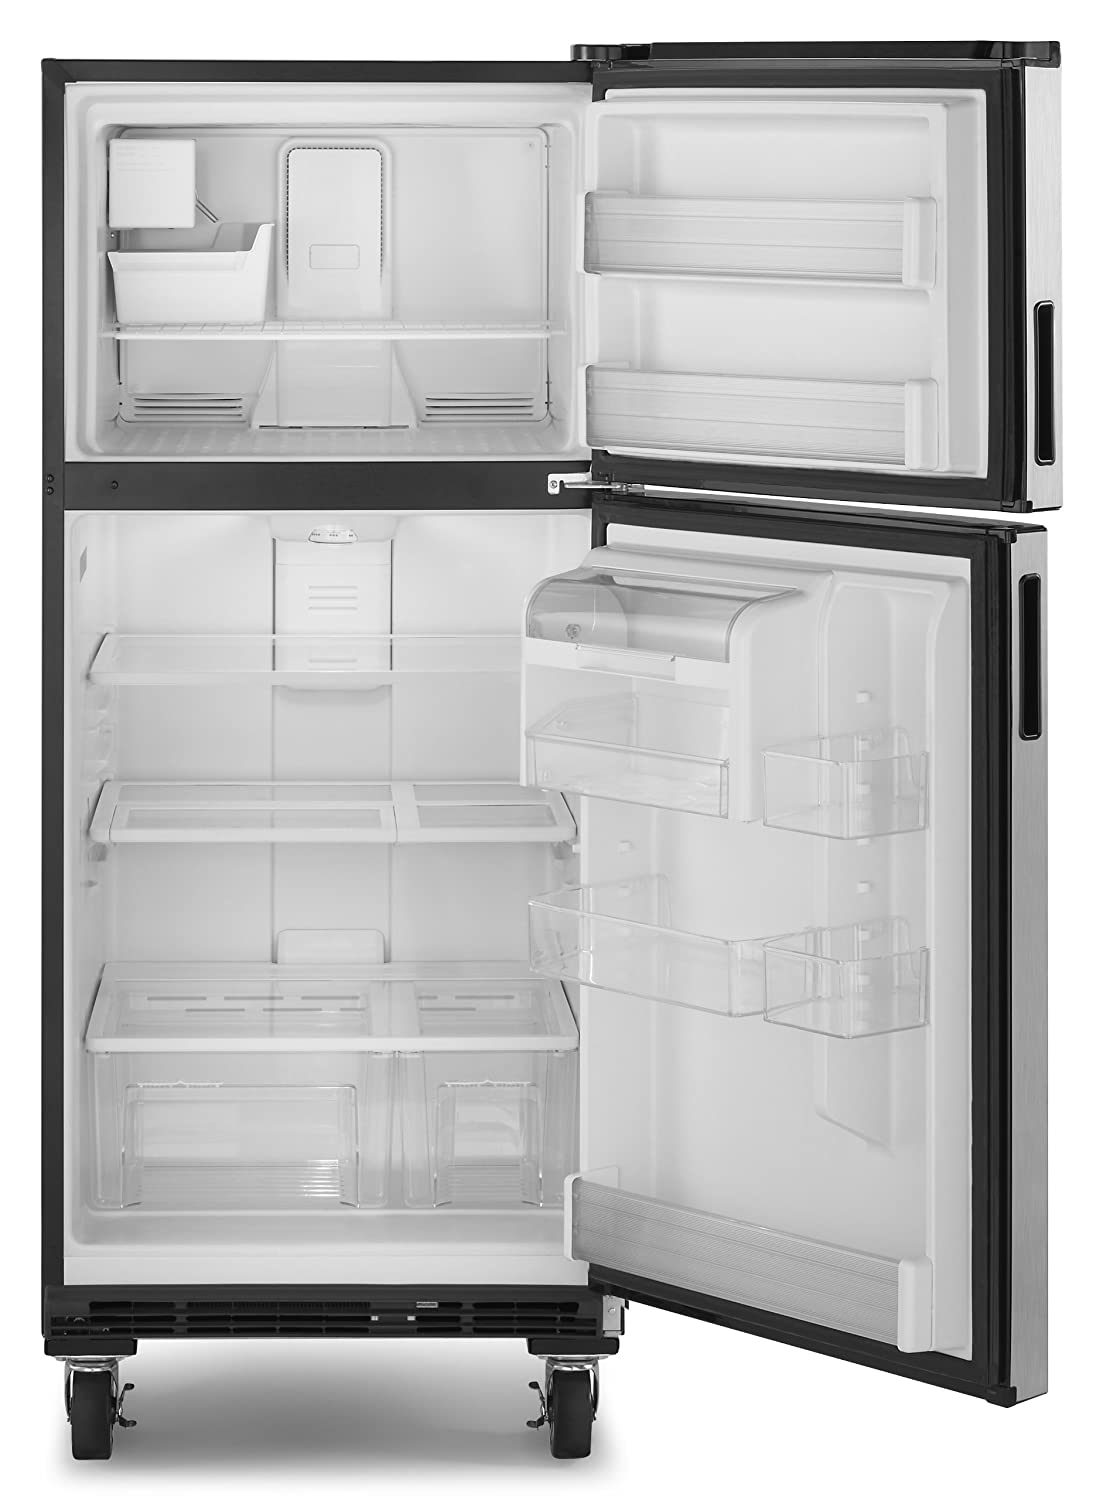 control makefinding garage frigidaire can review large fancy picture then mount freezer temperature ffhtqp refrigerators congenial one ga fftrqs of view refrigerator knobs ready vague like size